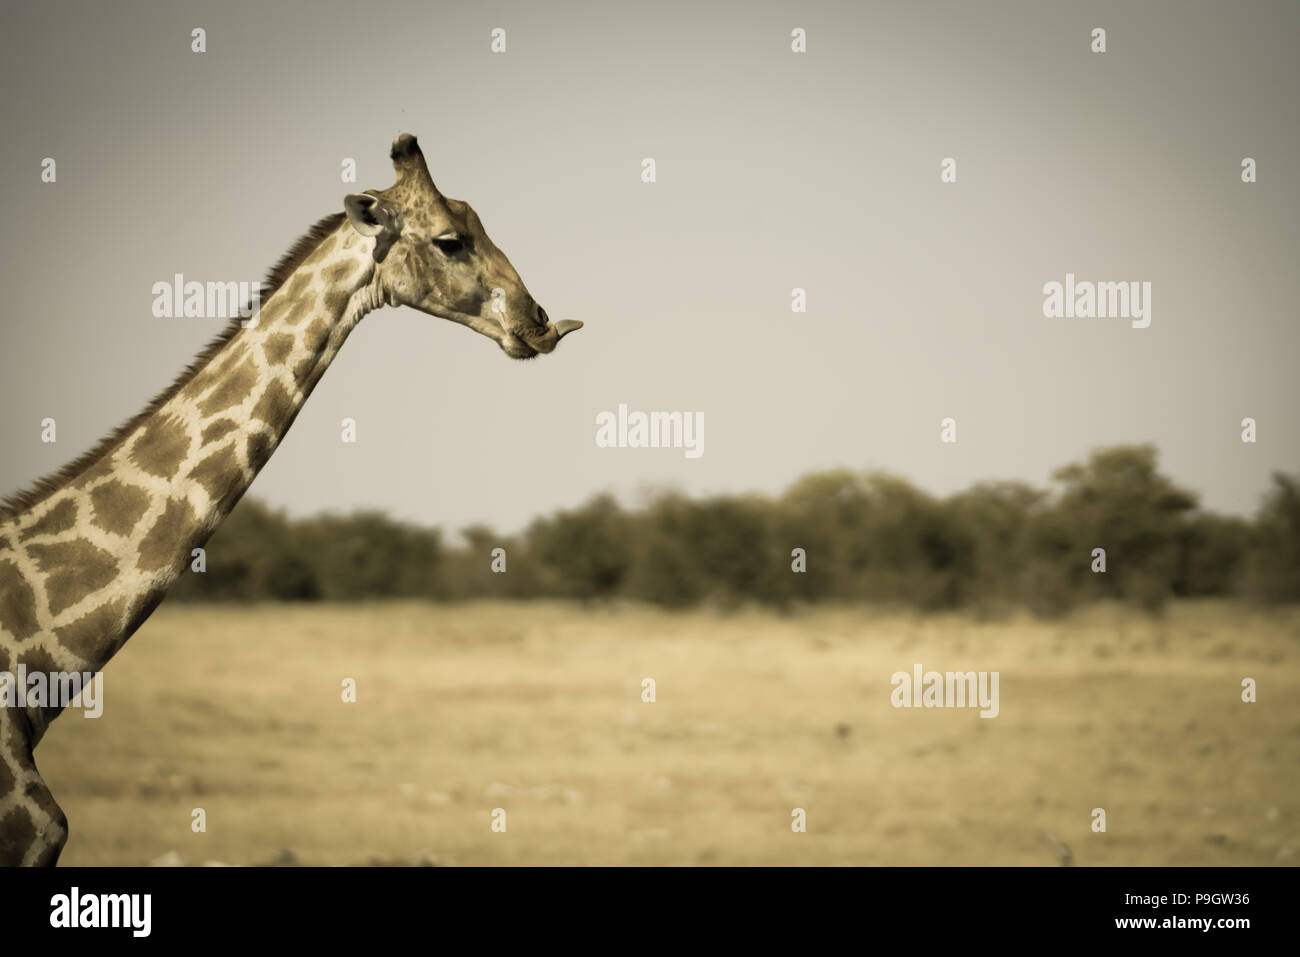 Giraffe portrait long neck above trees aged image style faded tones and vignette - Stock Image